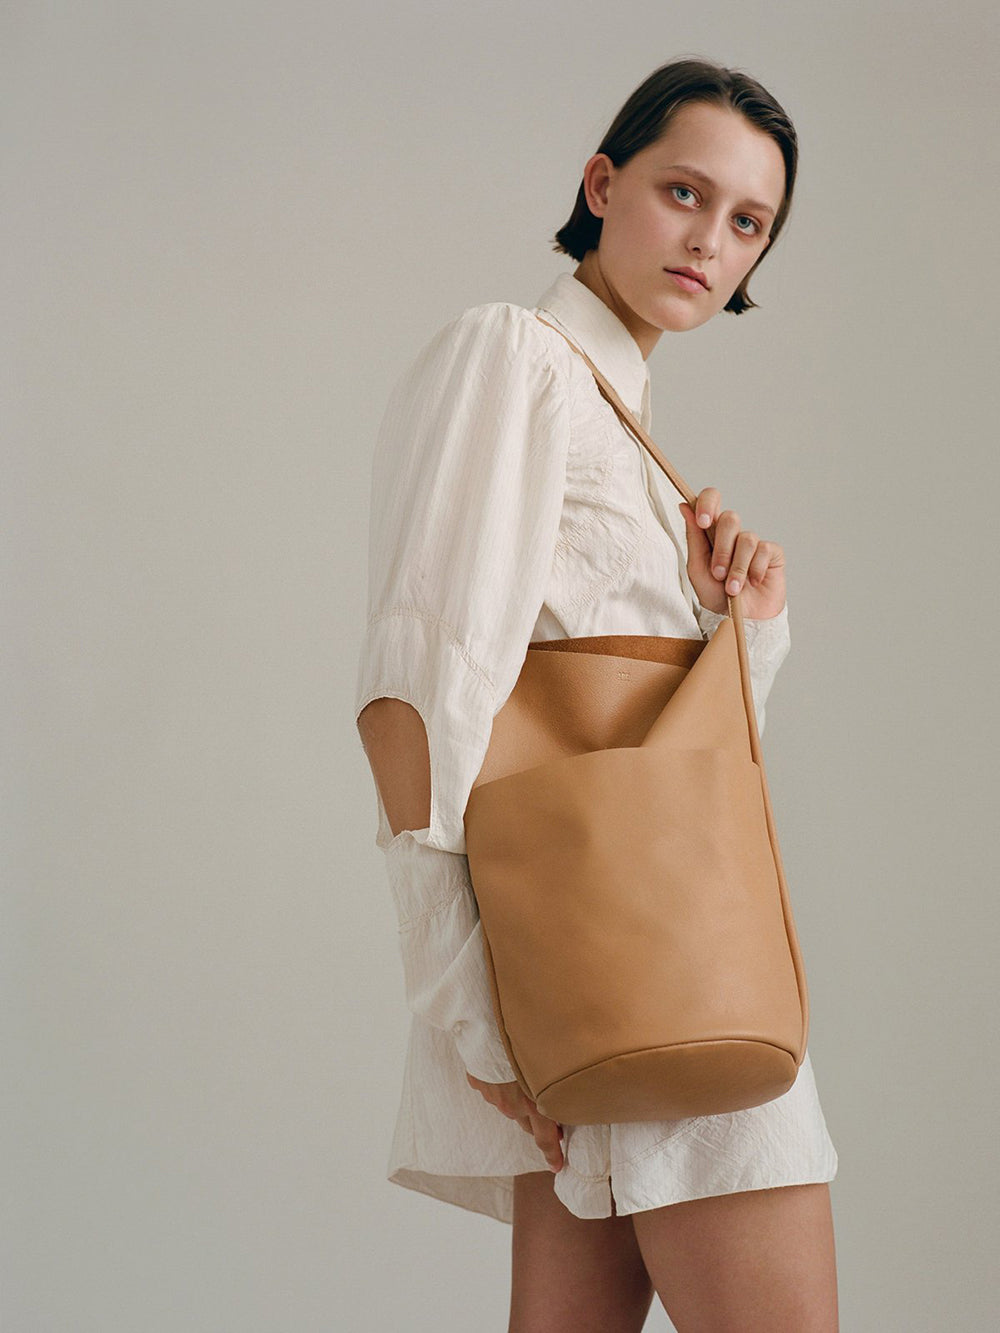 are studio buoy bag in tan